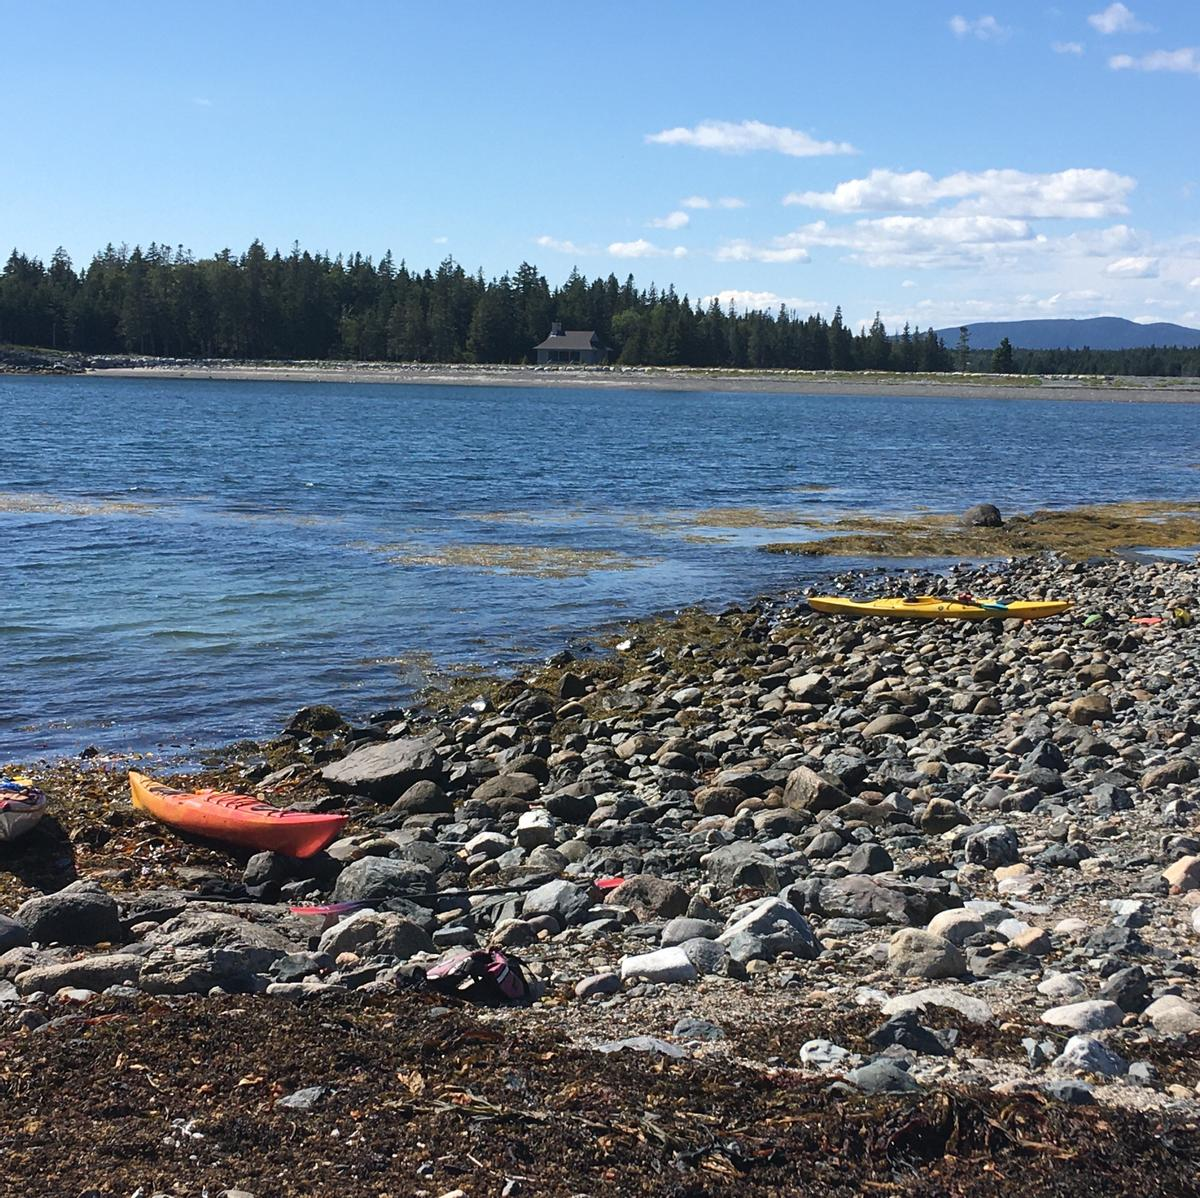 Two kayaks are pulled up on a rocky beach.